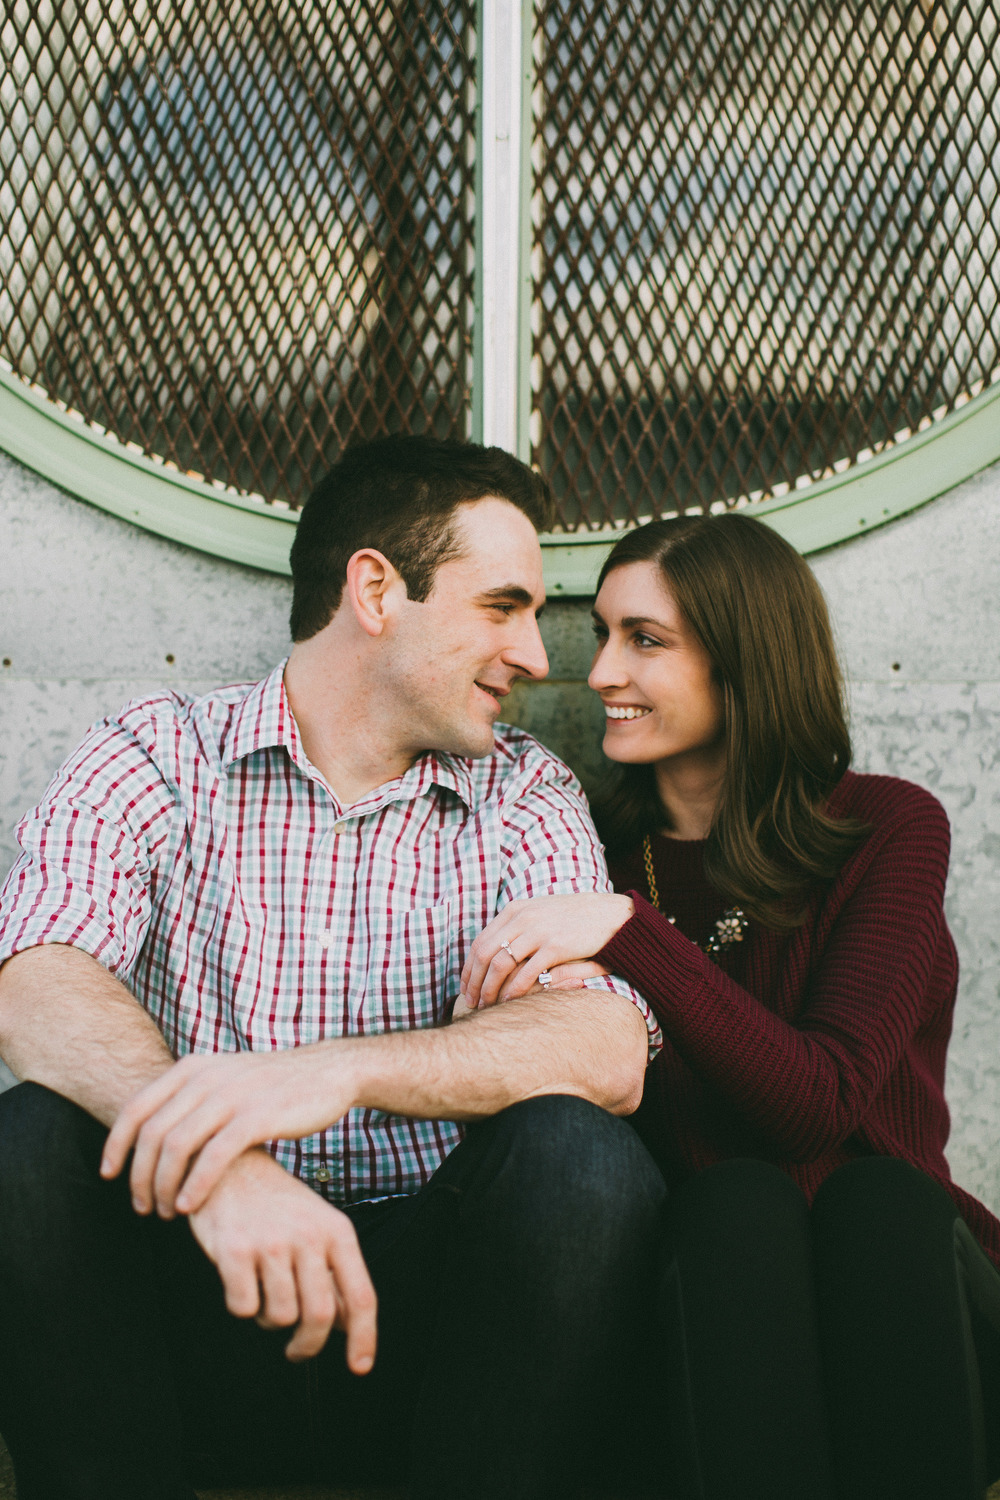 haliejohnsonphotography-bowers-engagement-48.jpg